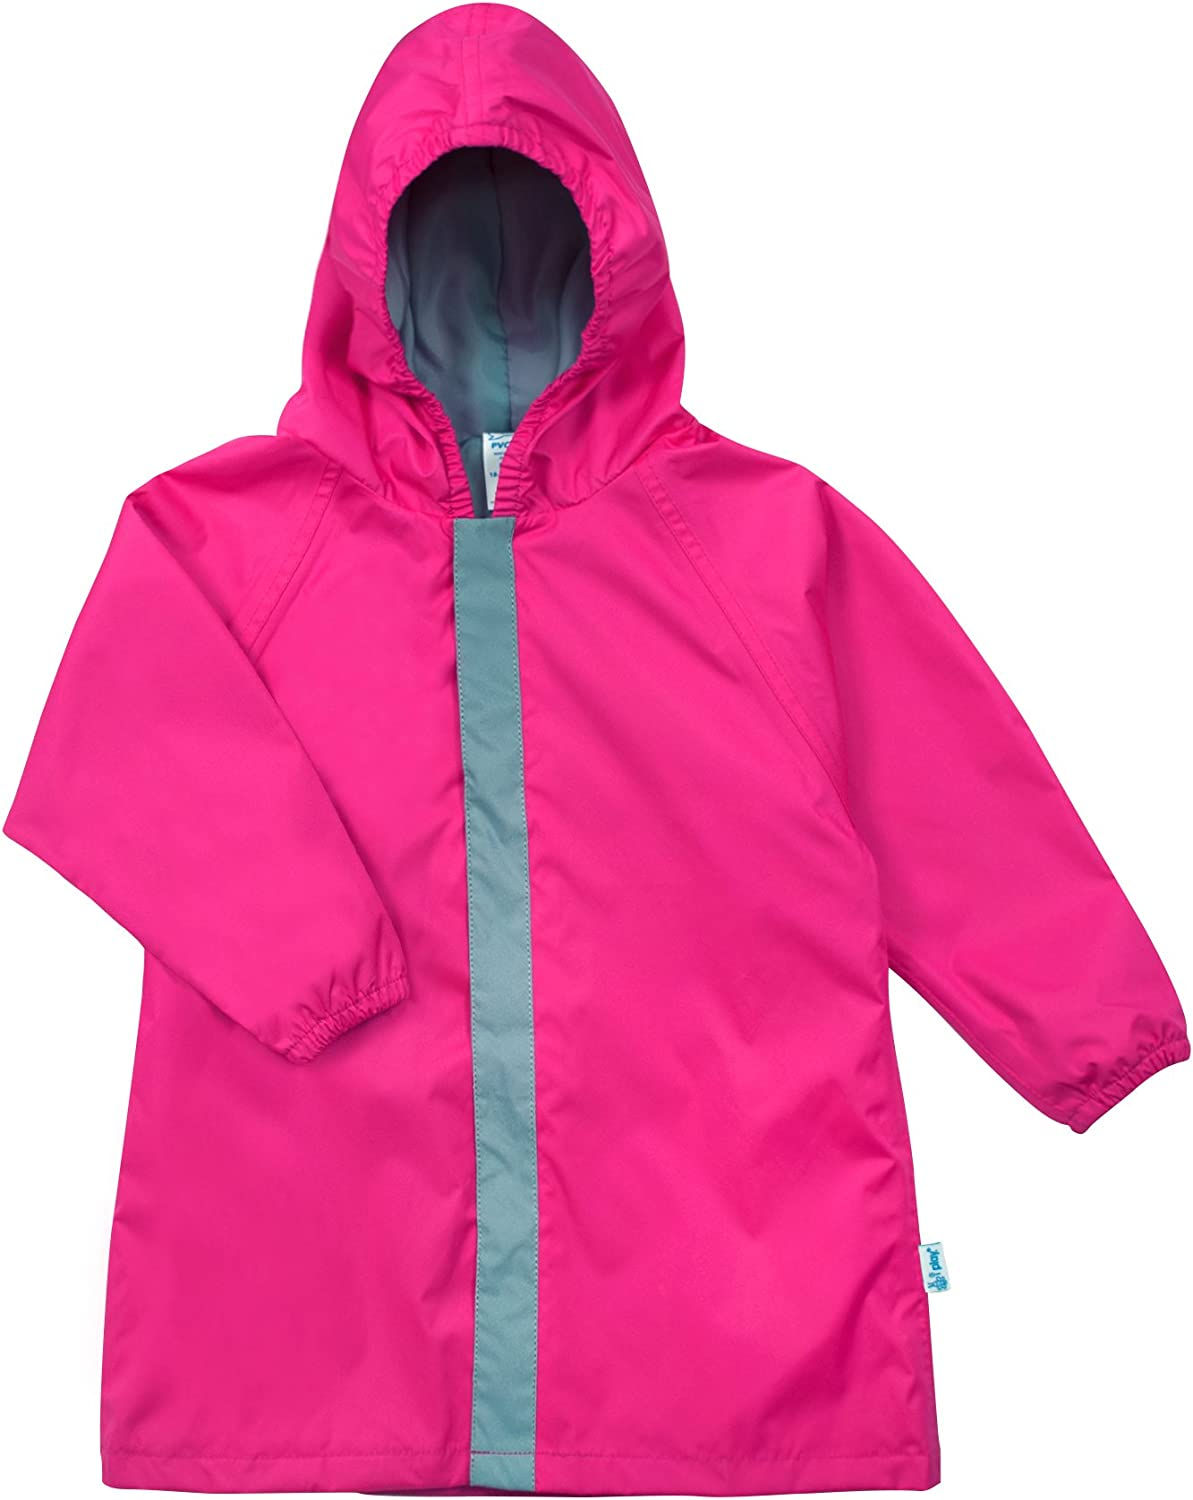 by green sprouts Baby Boys Lightweight Raincoat i play